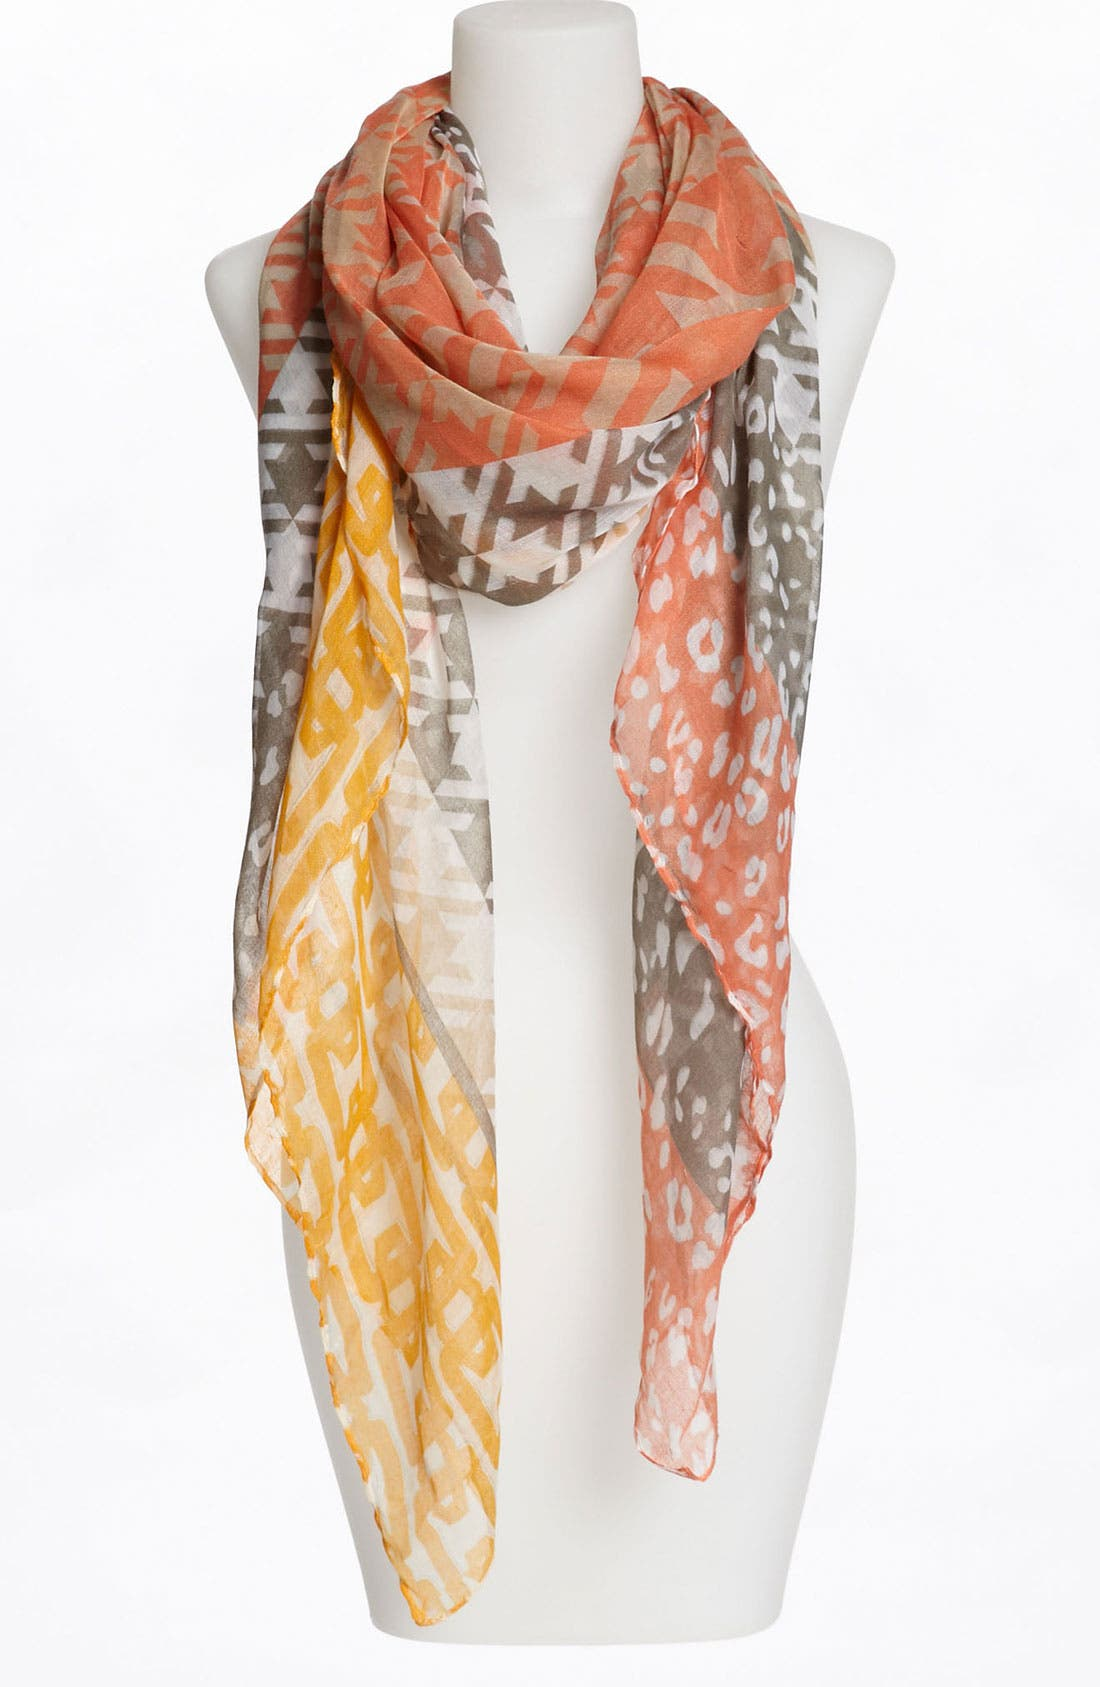 Alternate Image 1 Selected - Lulu Multi Print Sheer Scarf